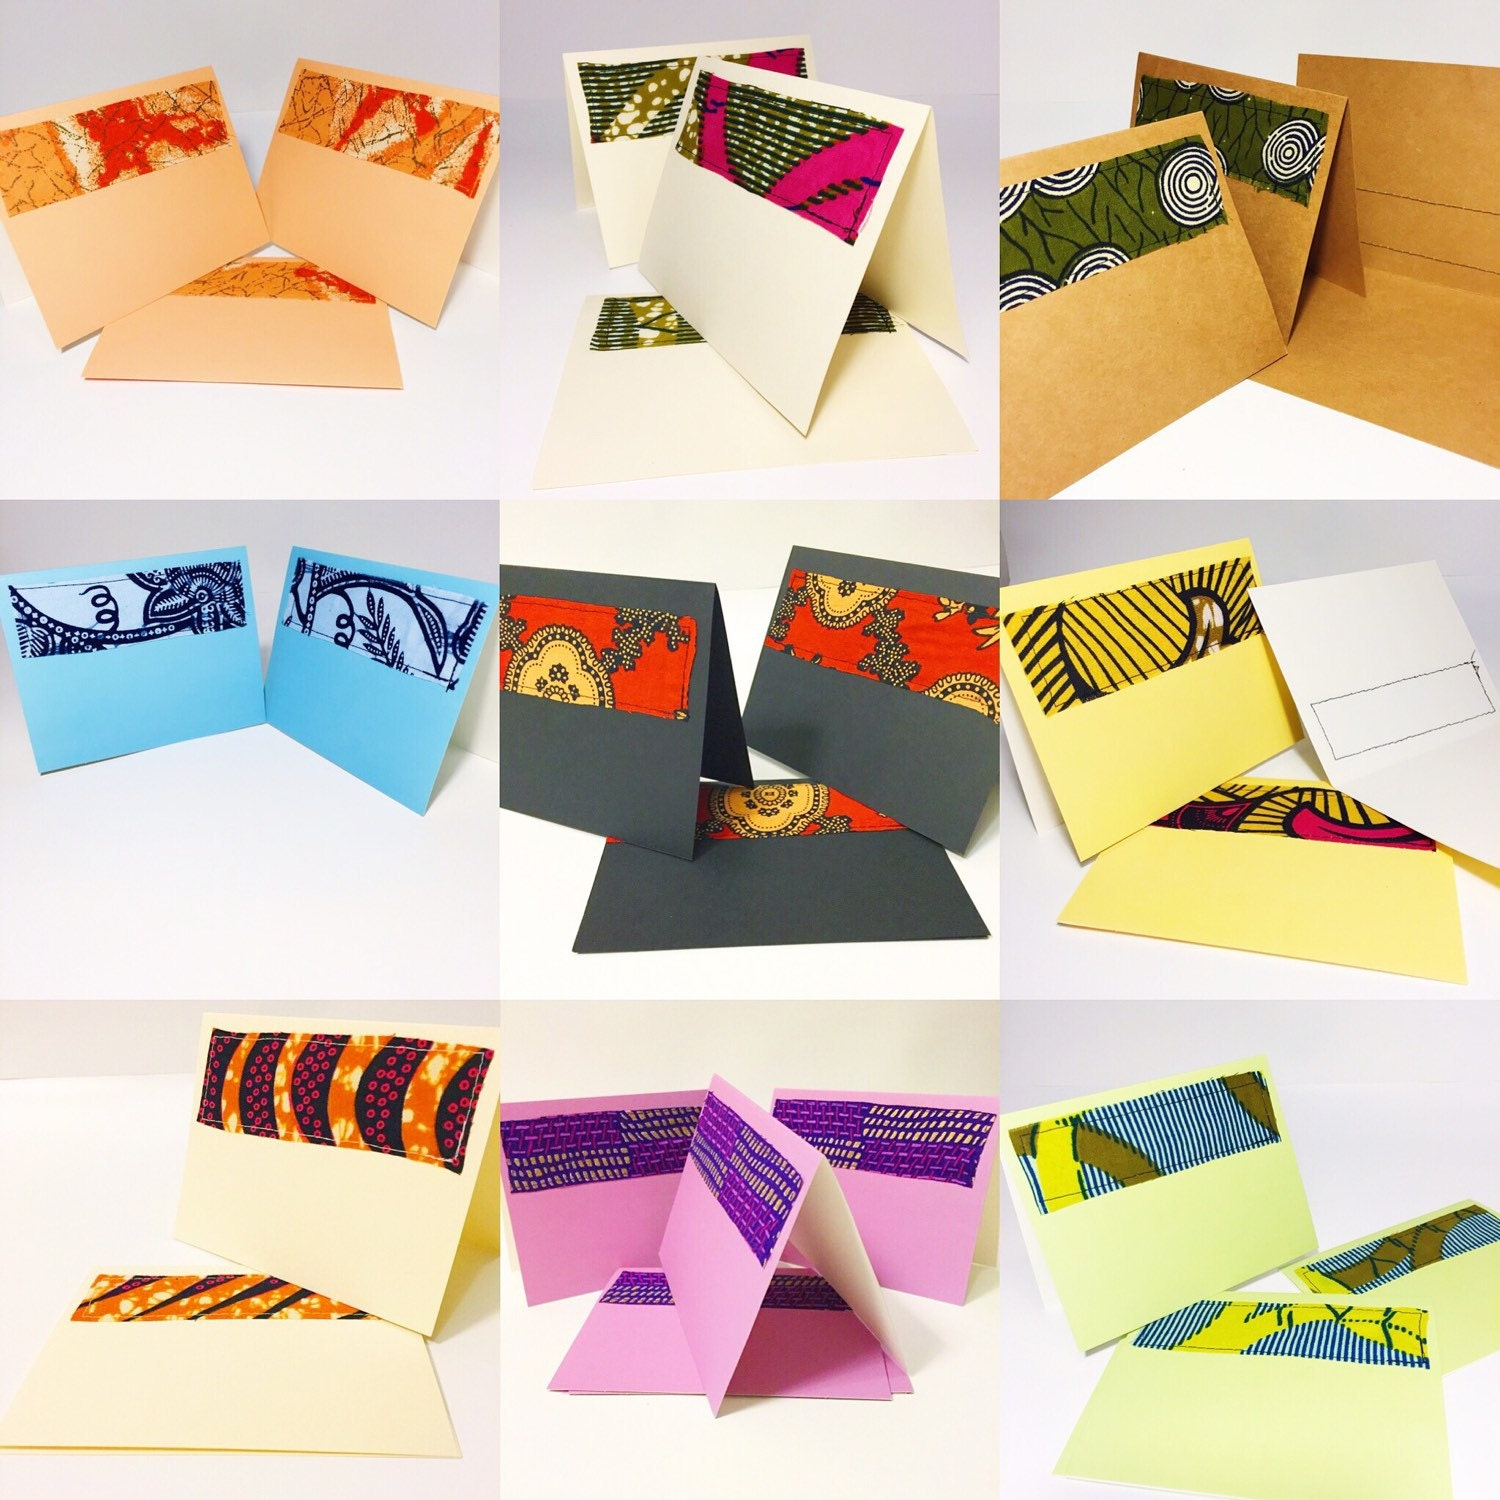 Pack of six blank cards greeting cards wax print blank cards pack of six blank cards greeting cards wax print blank cards six handmade african fabric greeting cards kristyandbryce Image collections